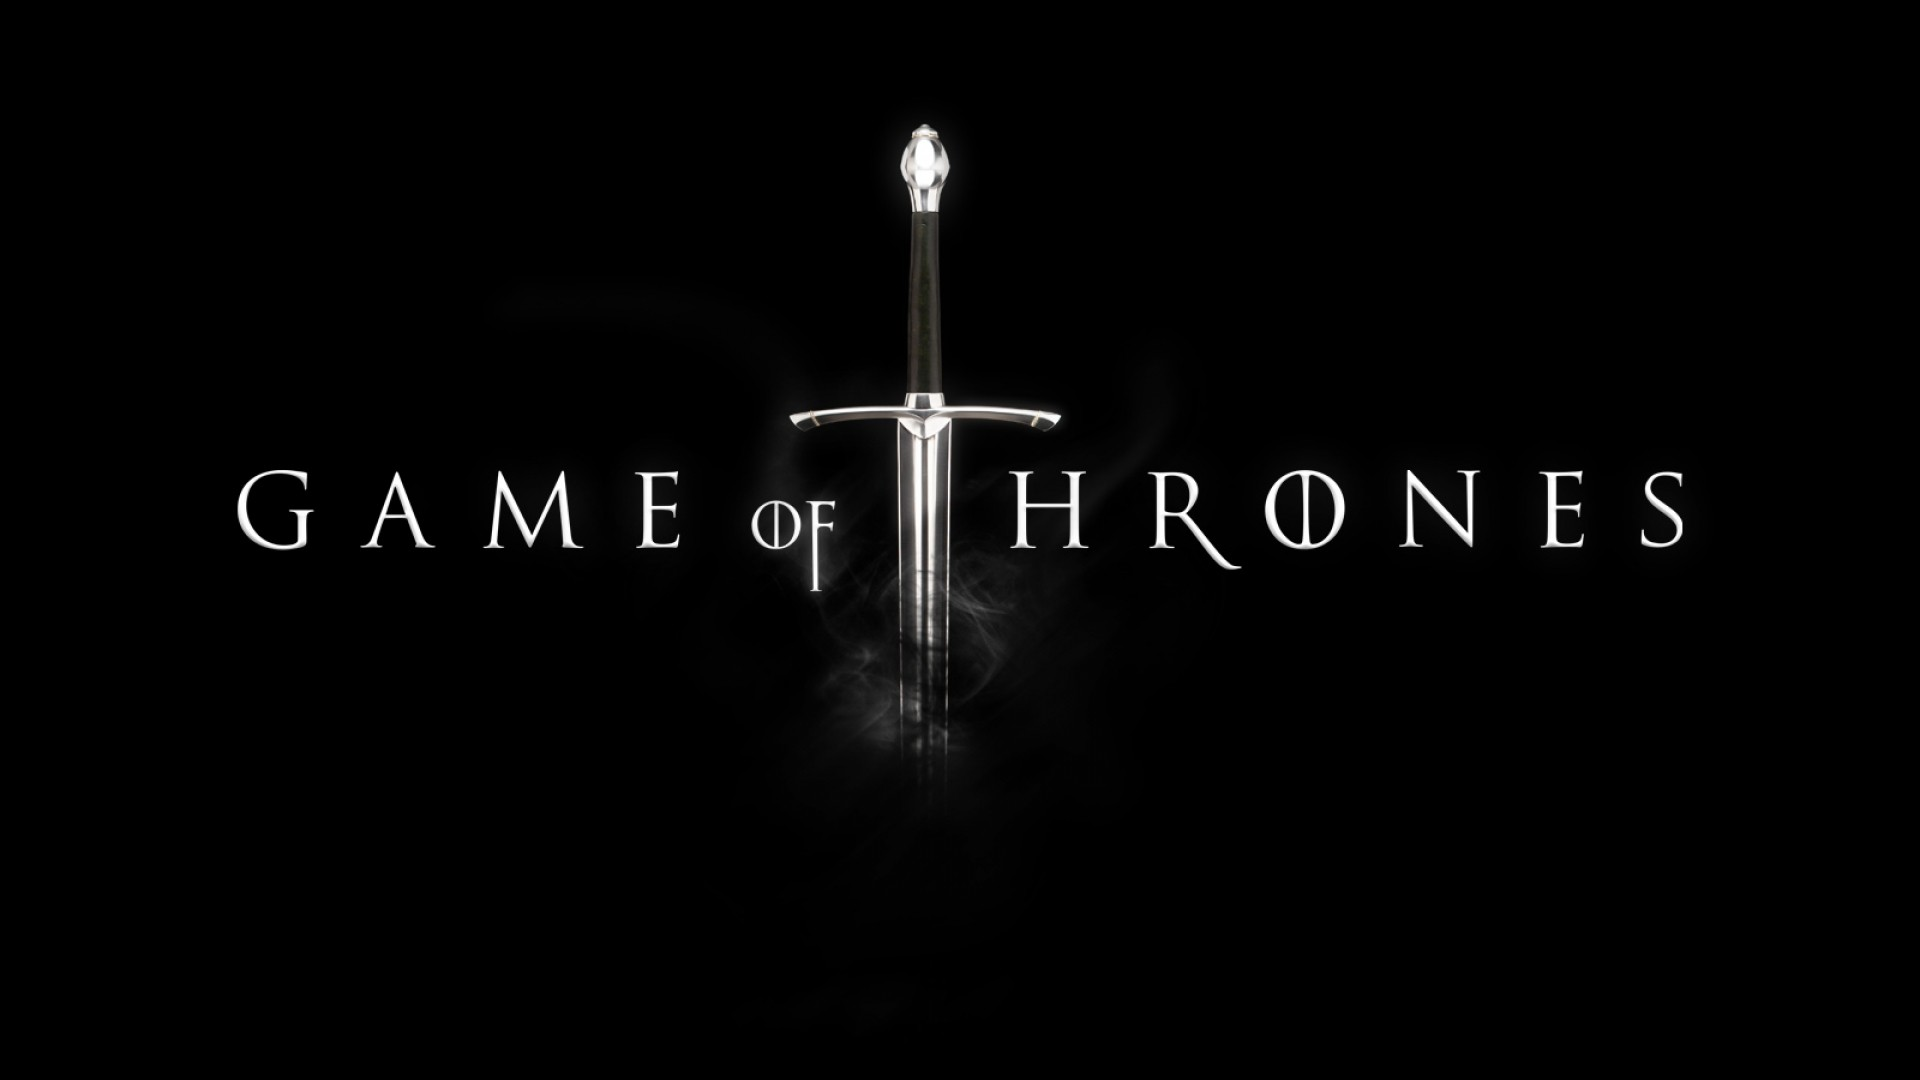 game of thrones exclusive hd wallpapers game of thrones wallpaper 1920x1080